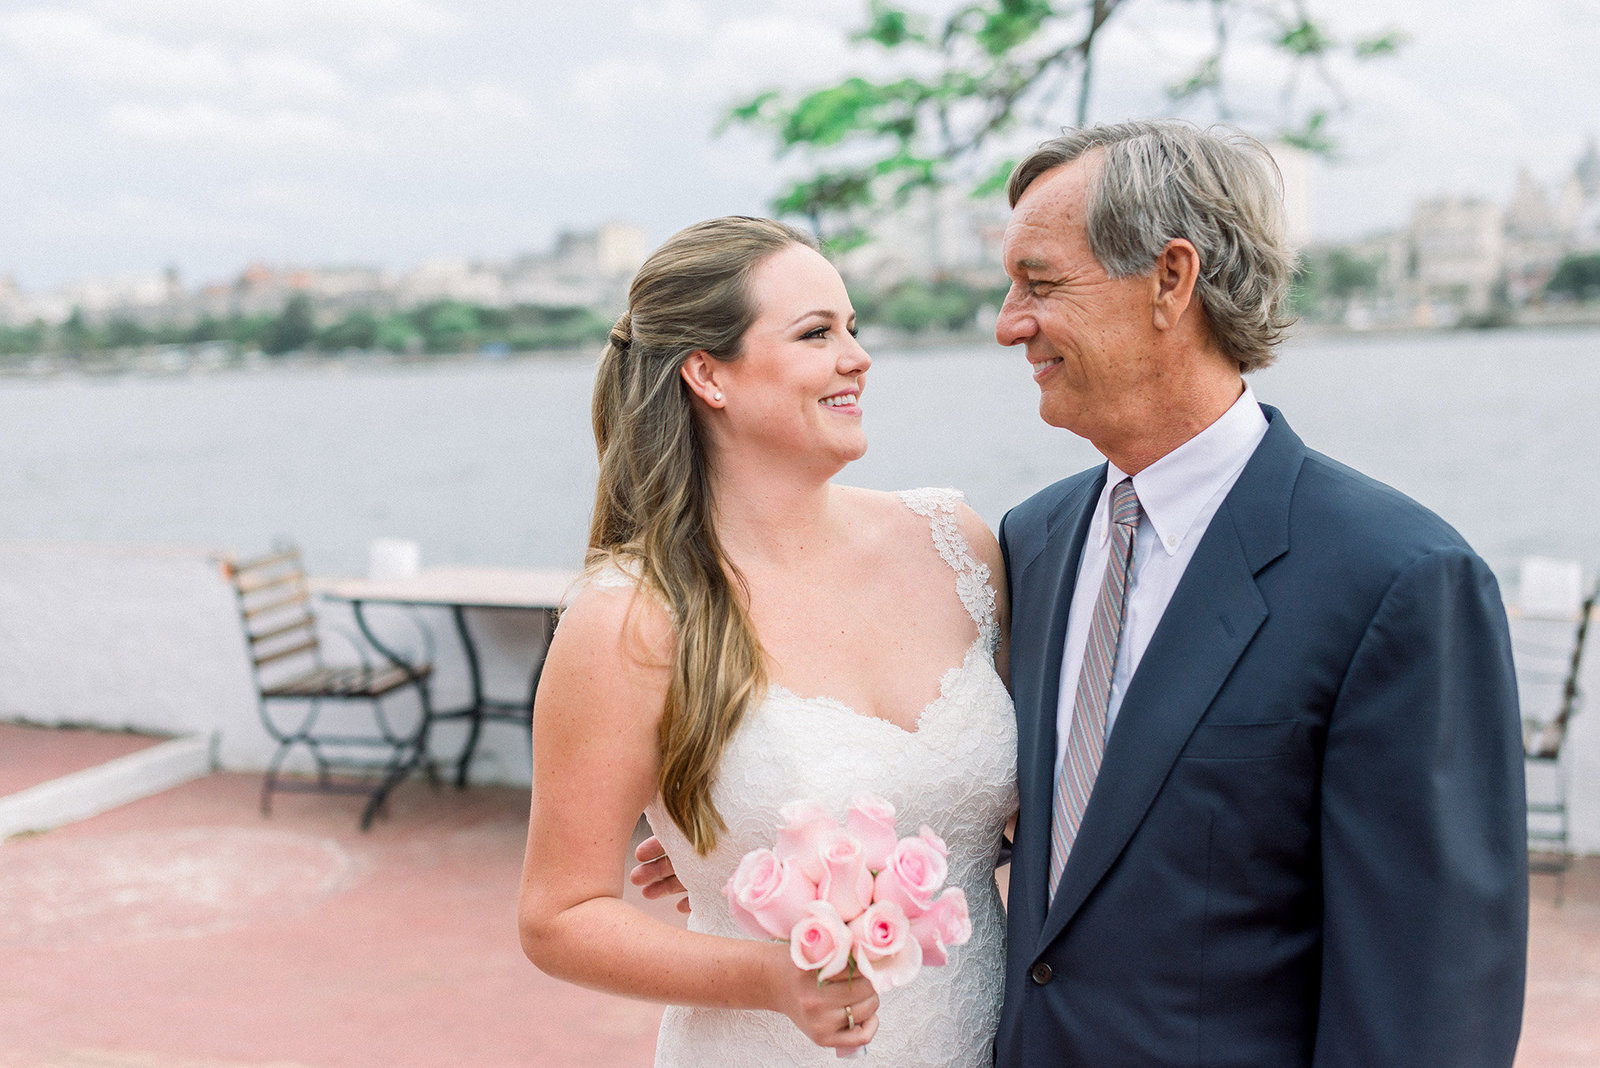 20150328-Pura-Soul-Photo-Cuba-Wedding-31